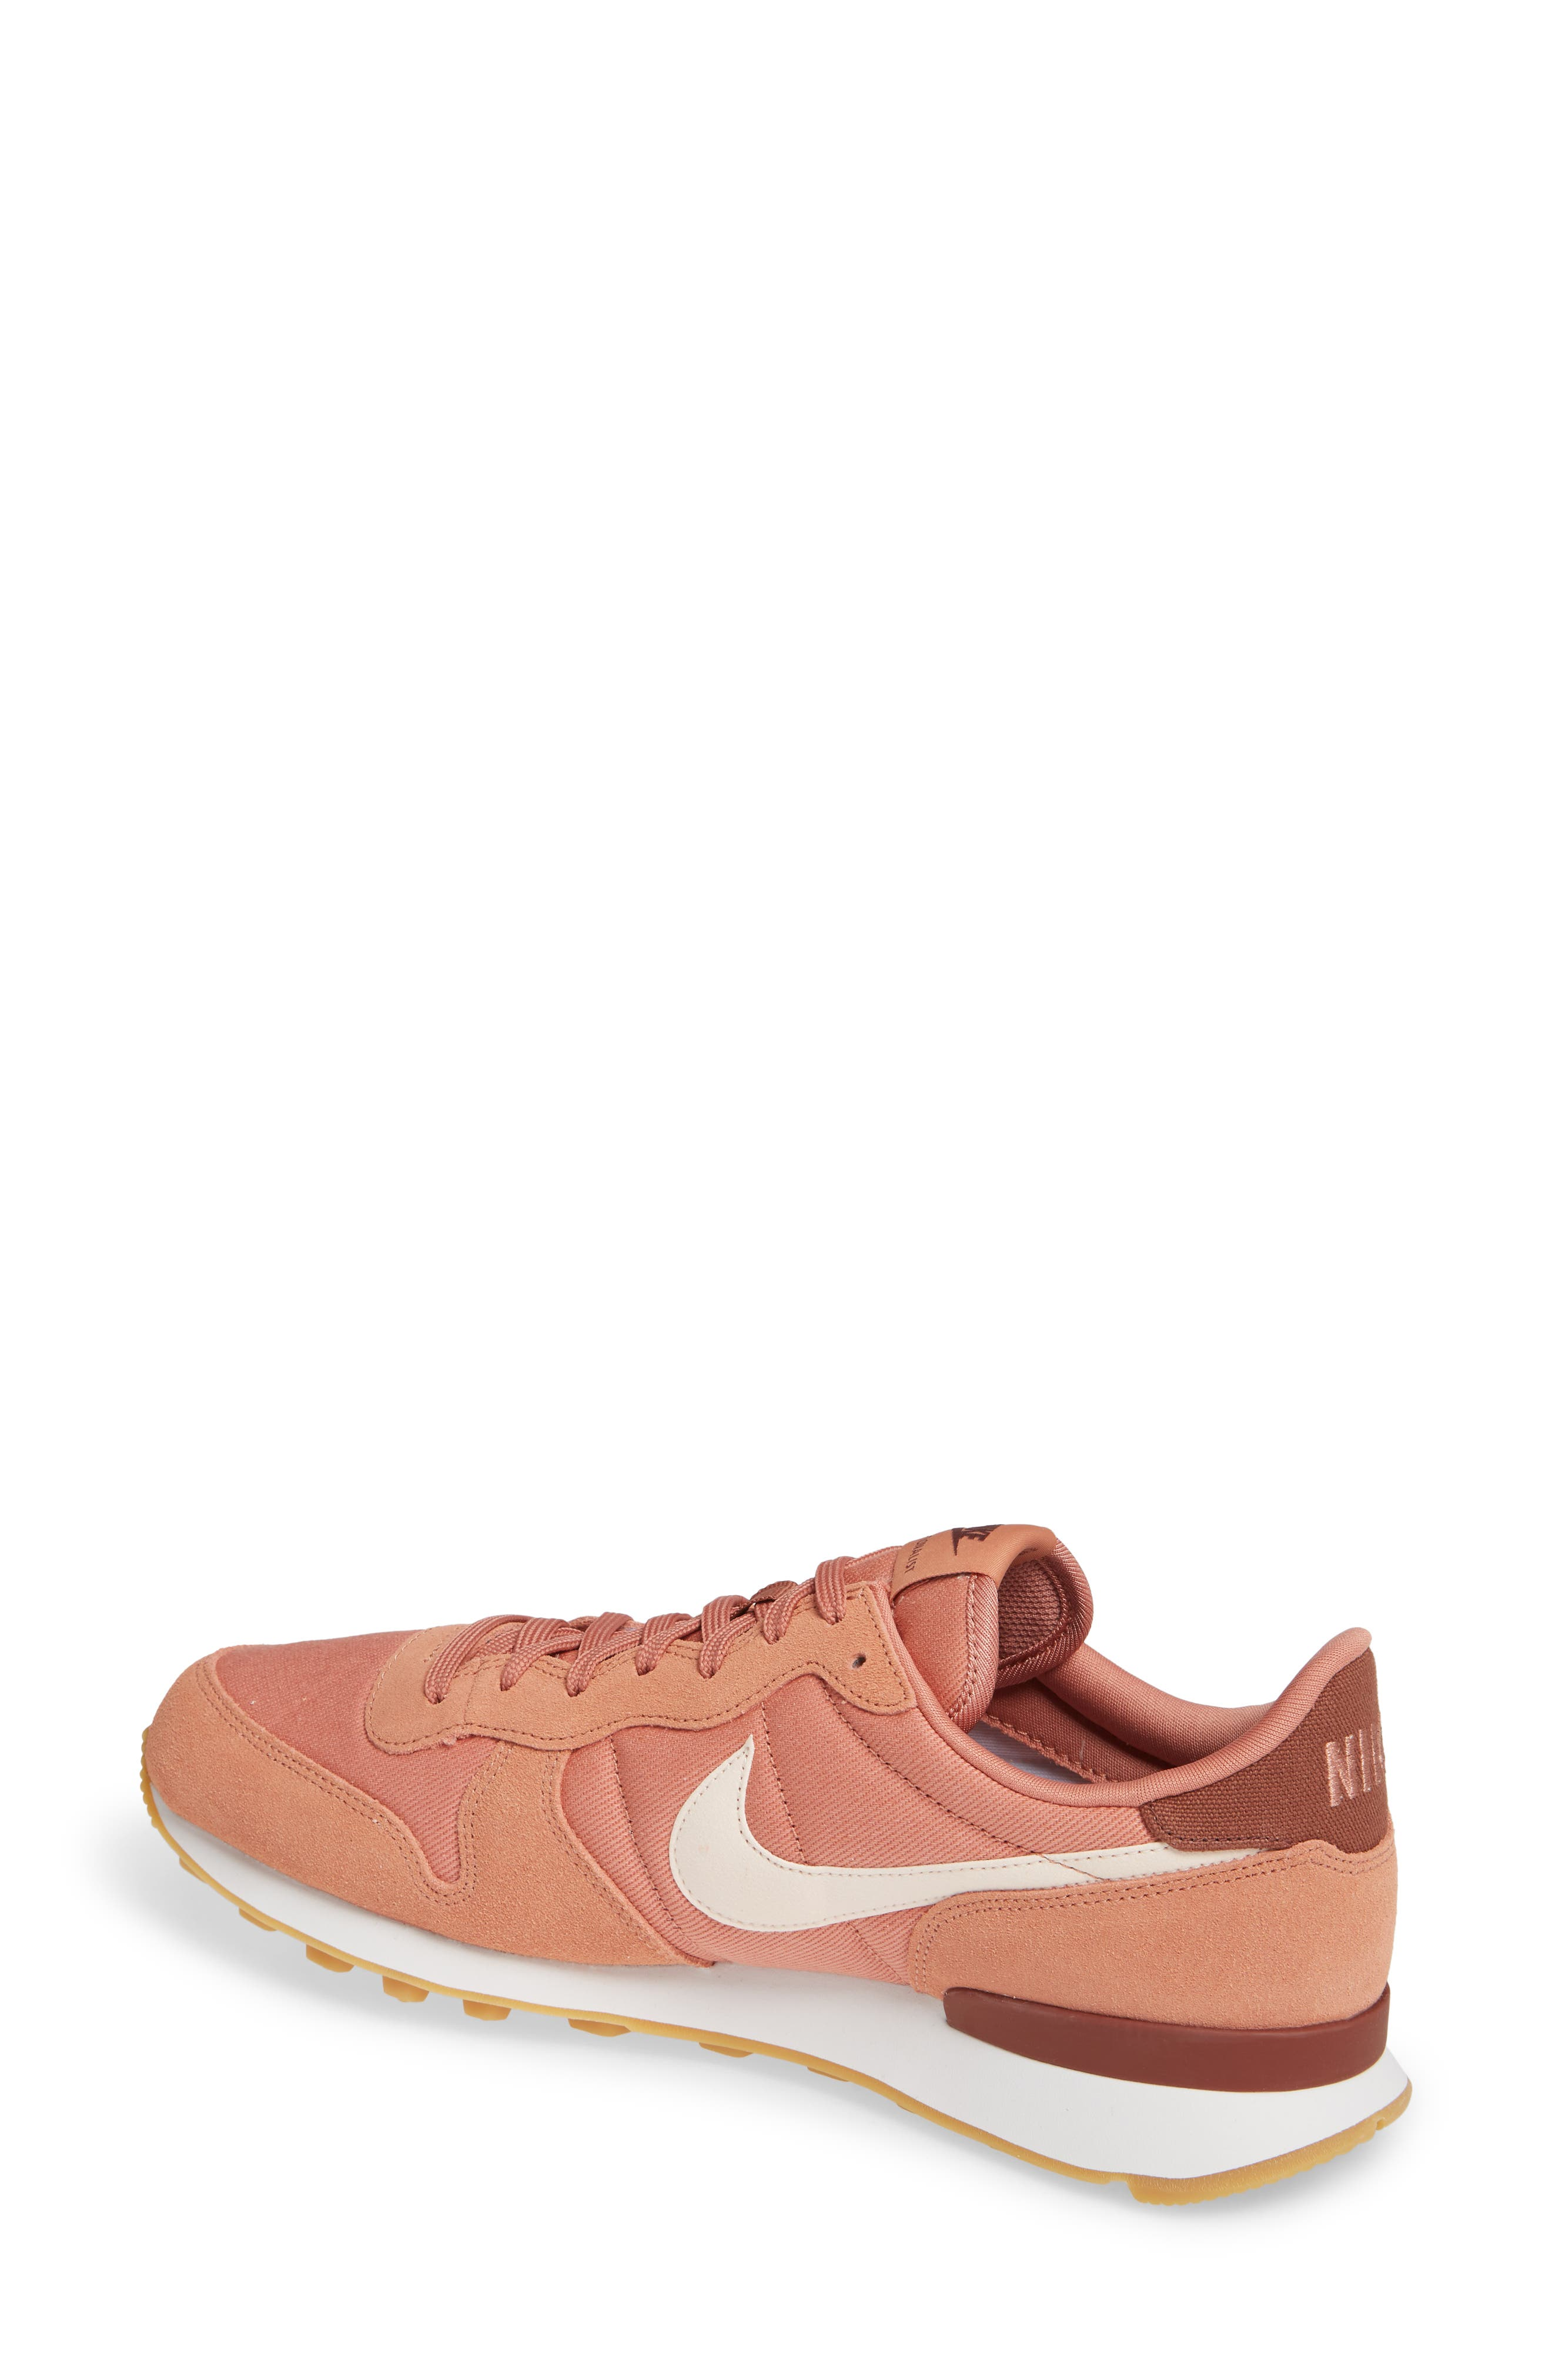 'Internationalist' Sneaker,                             Alternate thumbnail 2, color,                             950